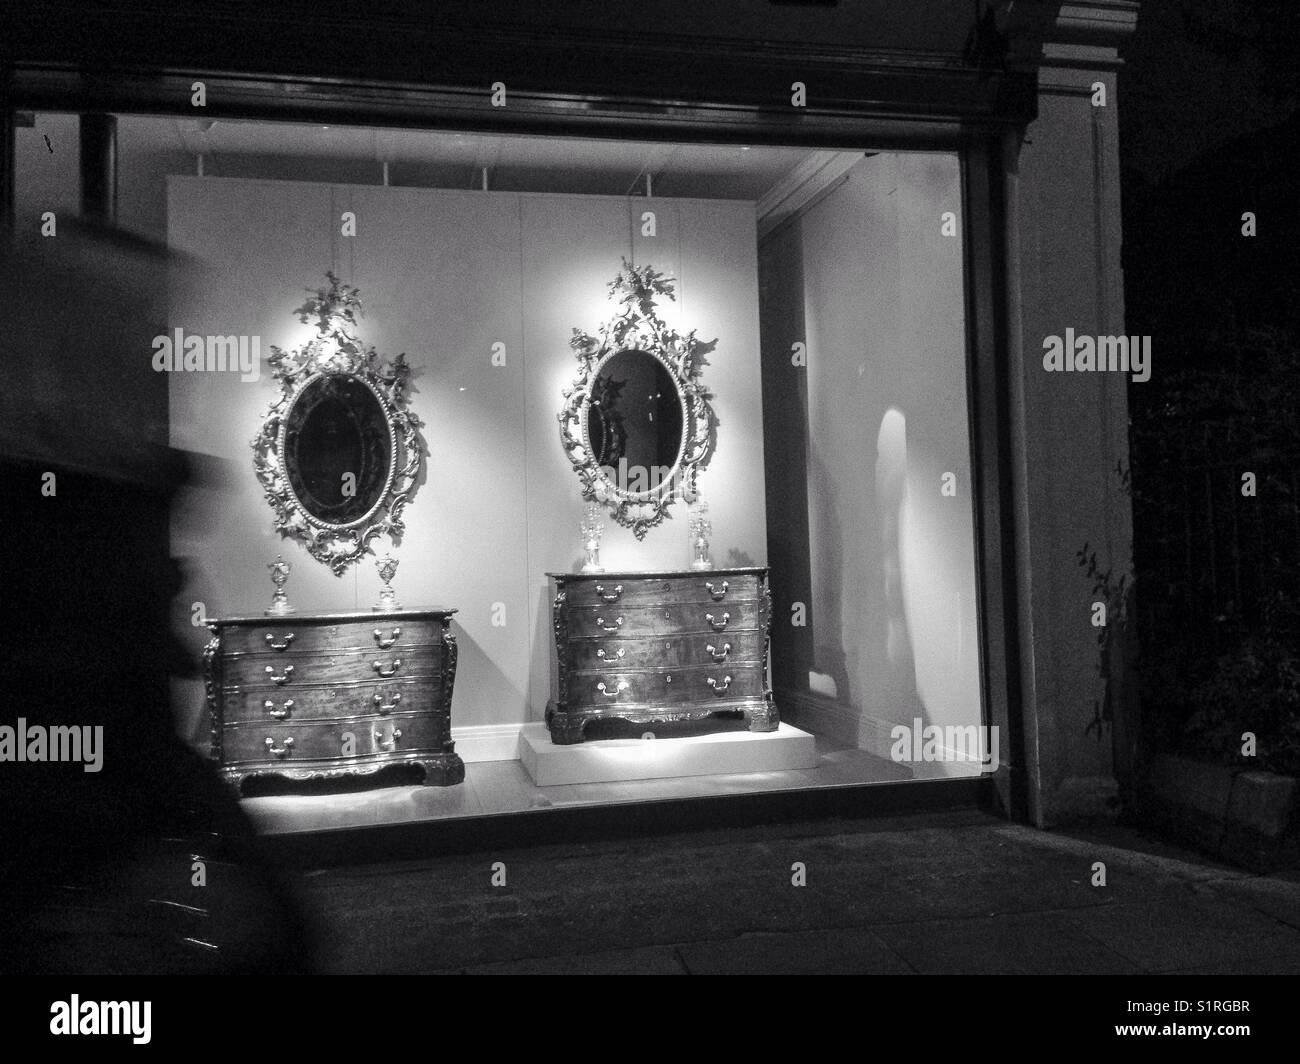 Window shop at night - Stock Image